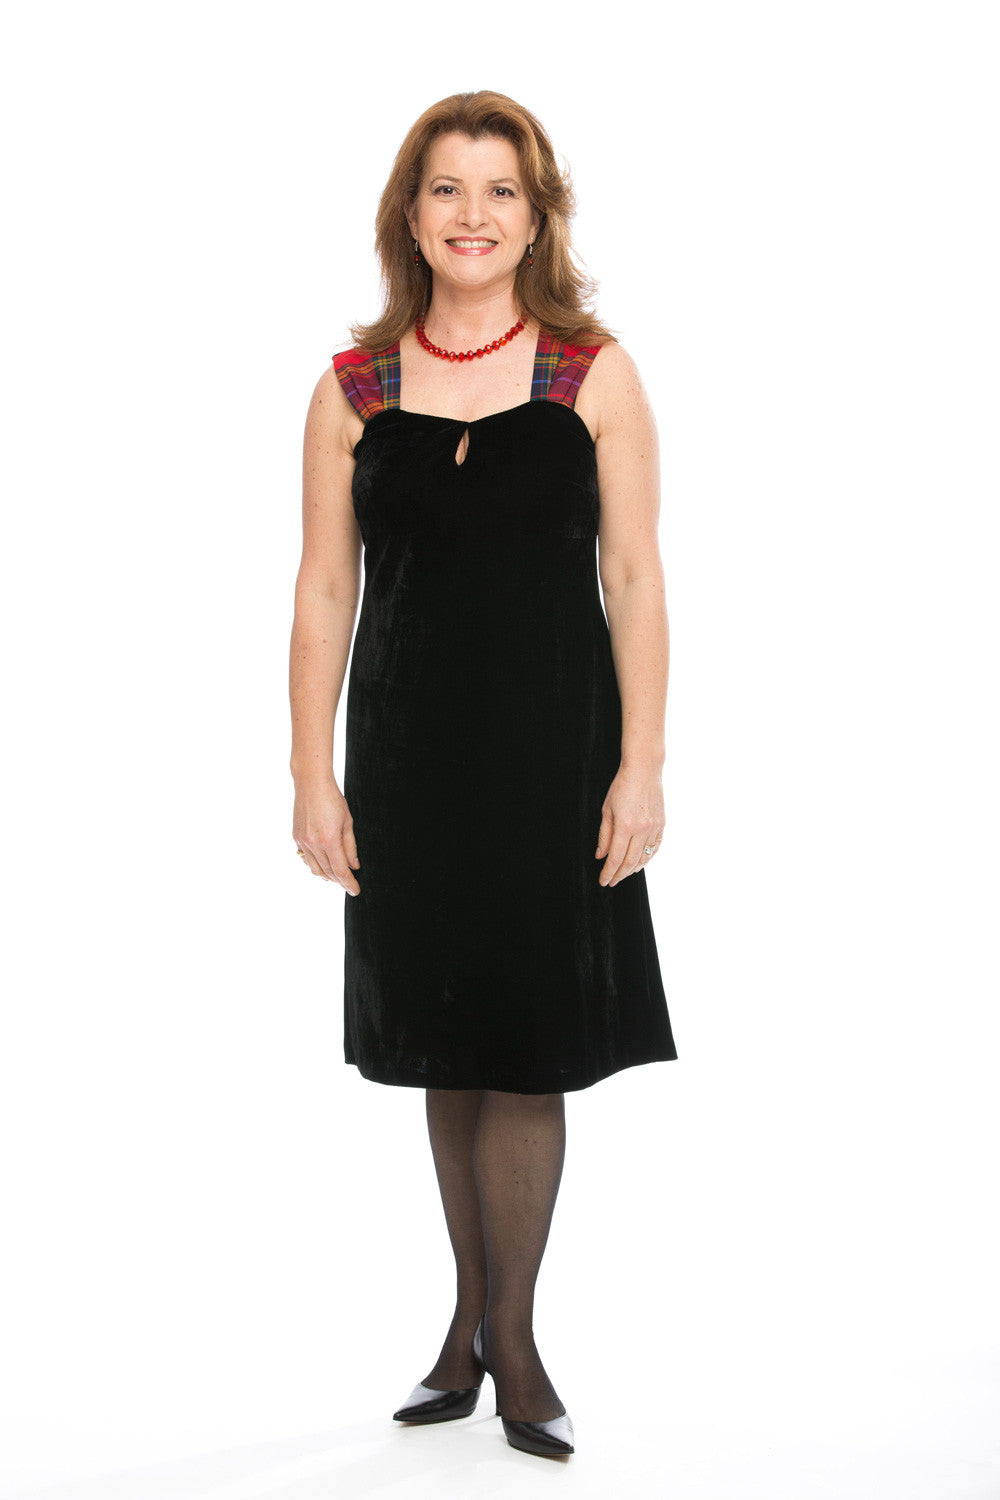 Black dress with touch of red - Lorna Tartan Touch Red